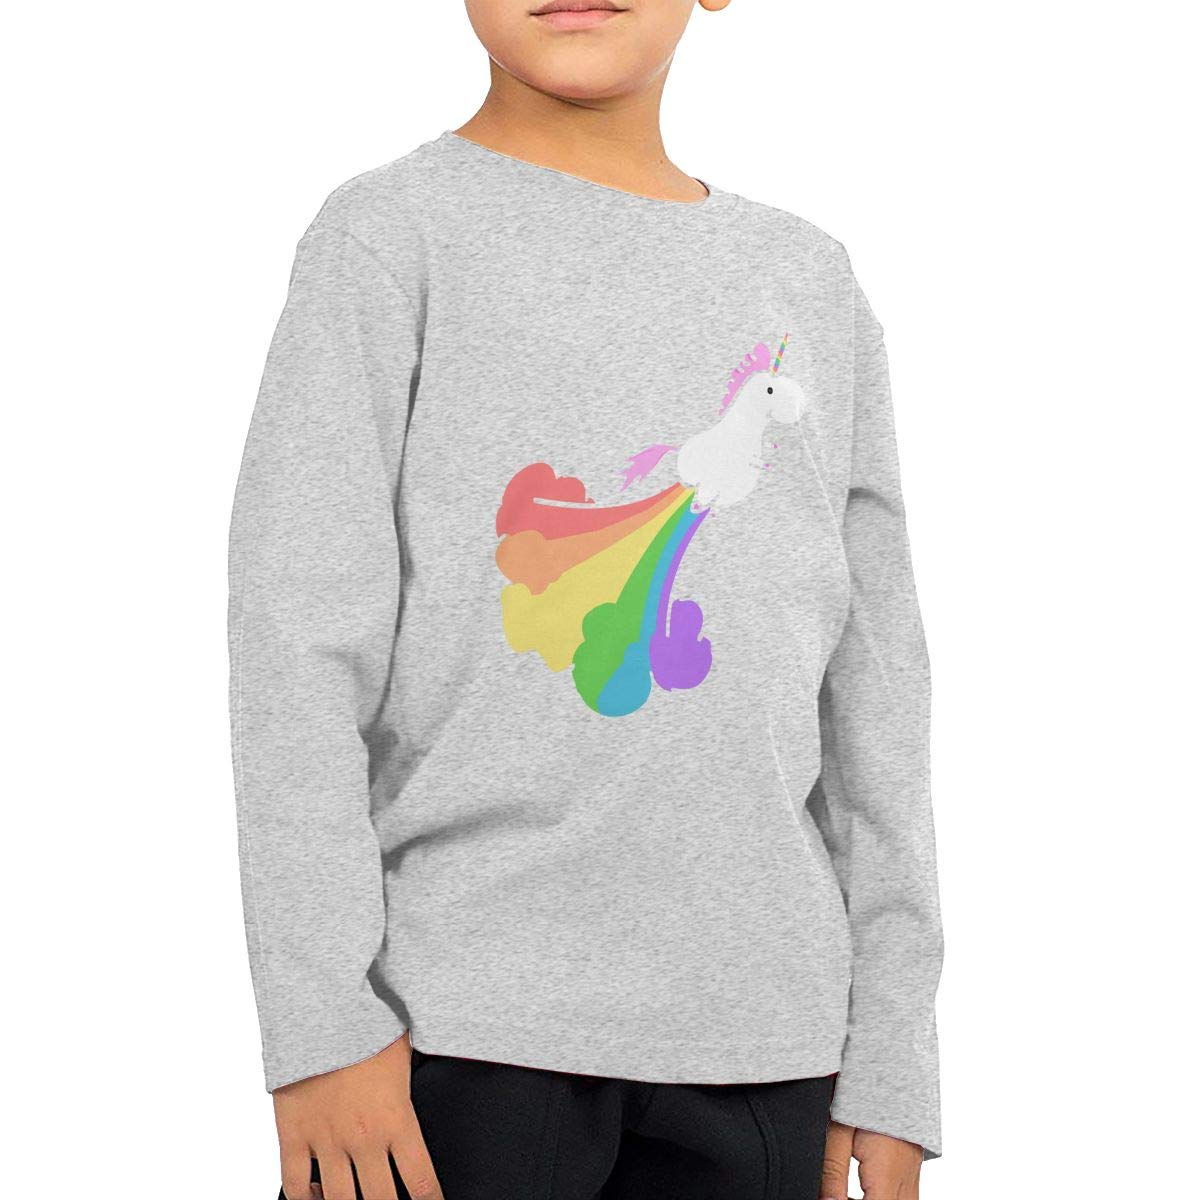 Fart Rainbow Unicorn Childrens Gray Cotton Long Sleeve Round Neck T Shirt for Boy Or Girl